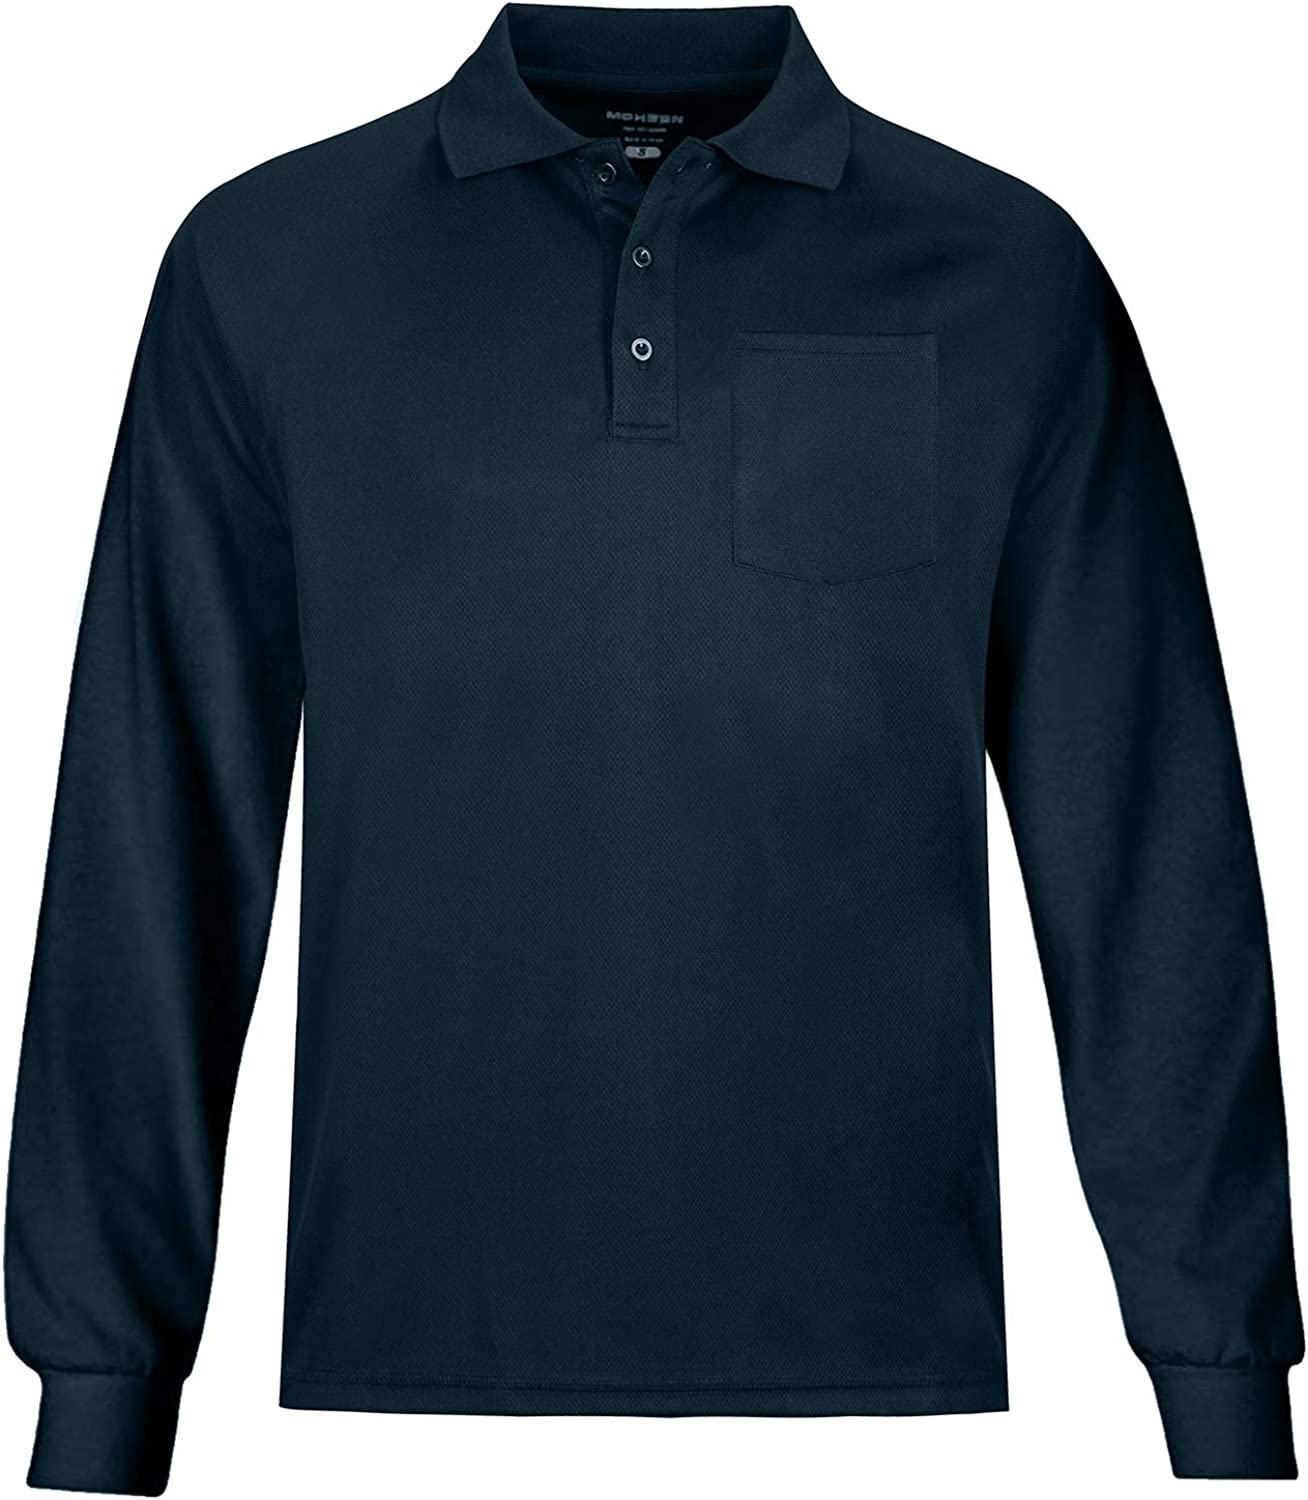 MOHEEN Men's Outdoor Big & Tall Long Sleeve Moisture Wicking Performance Golf Polo Shirt